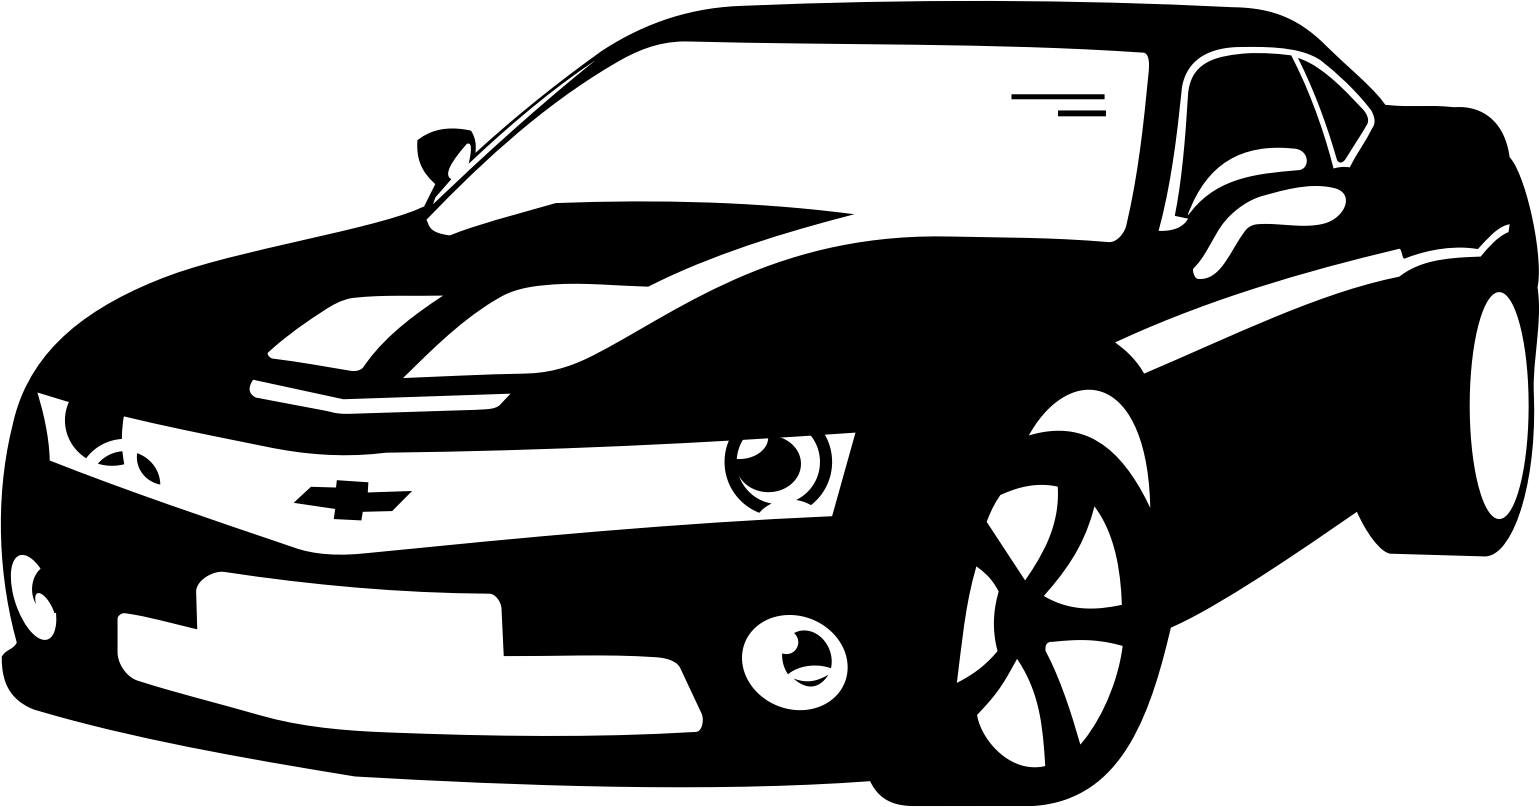 Chevrolet vector car chevy. Free logo cliparts download